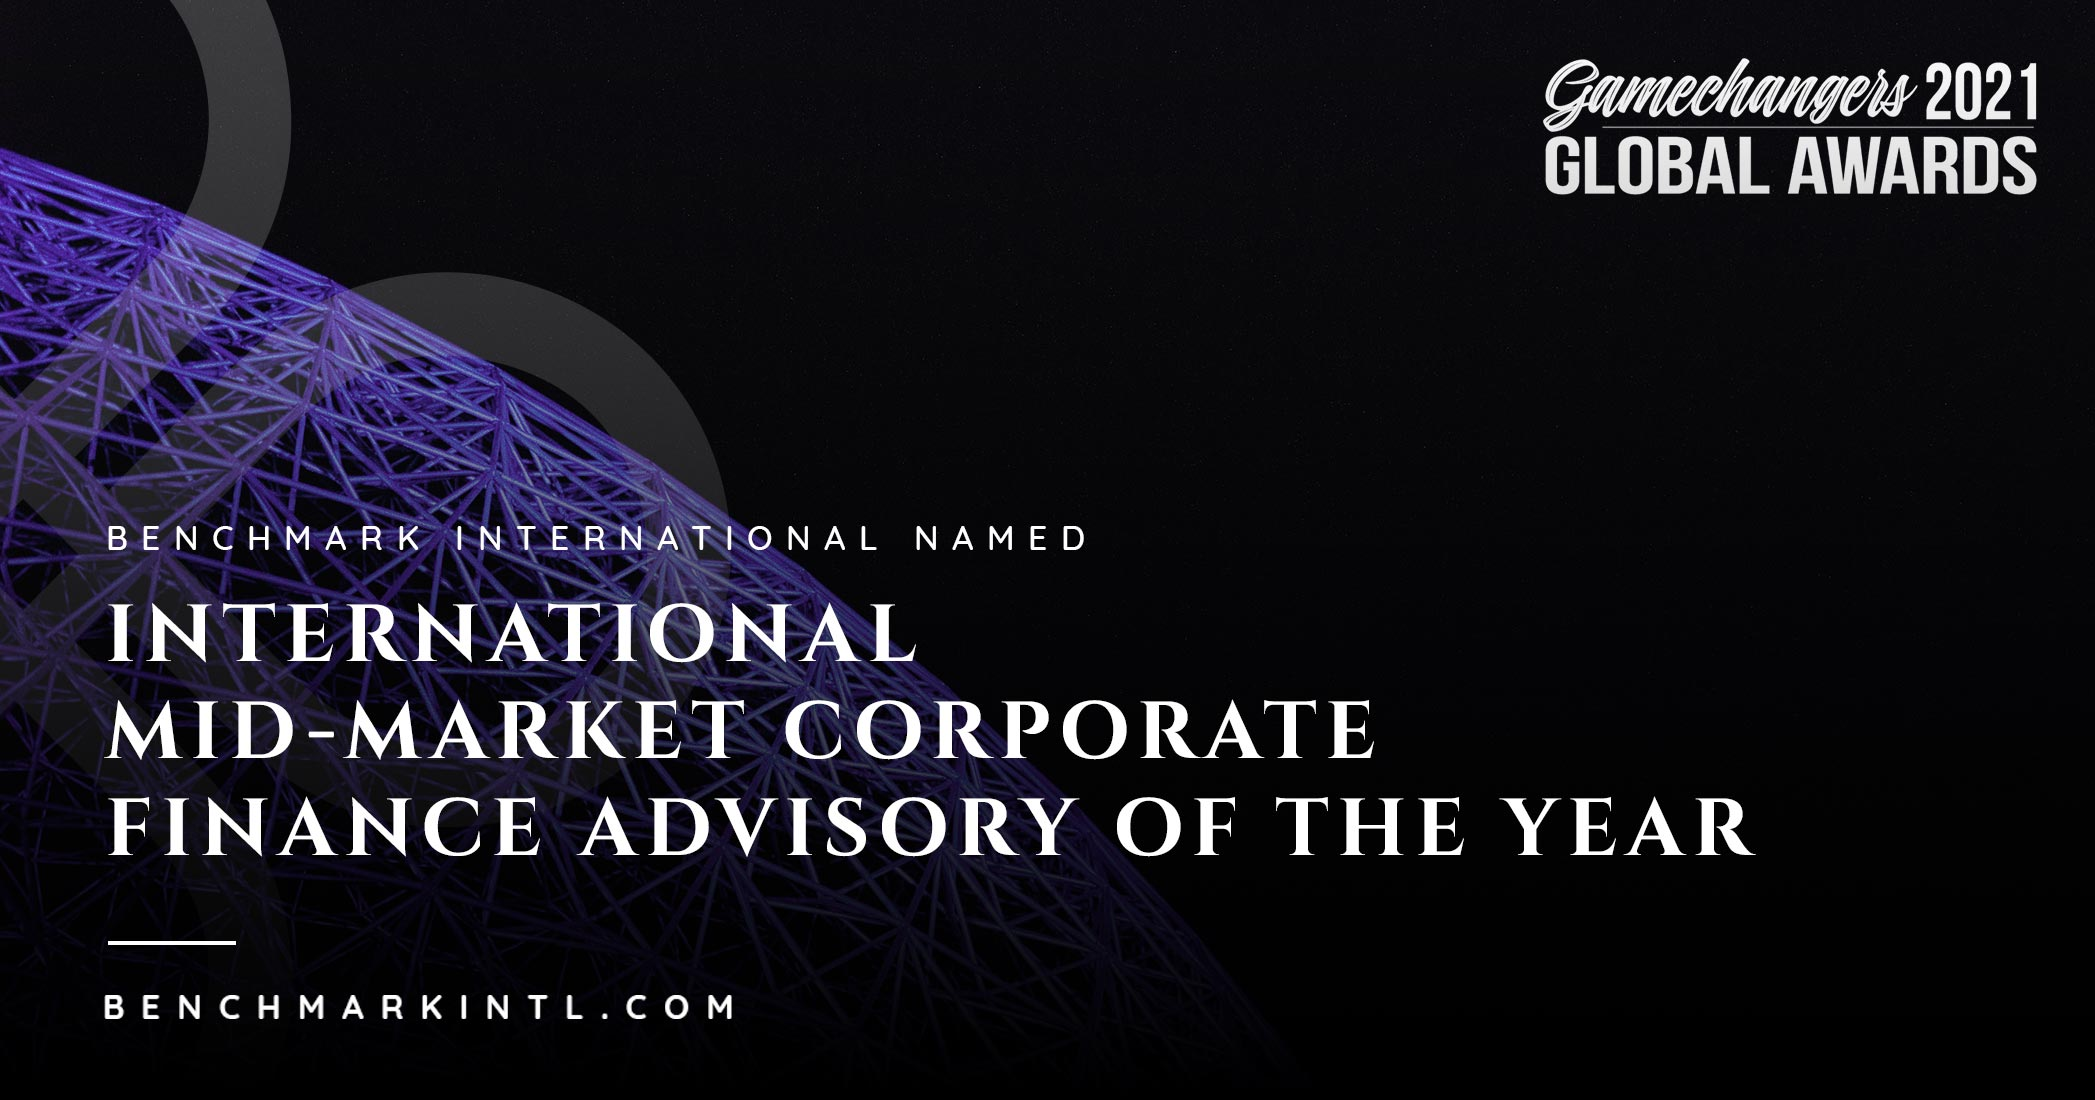 Benchmark International Named International Mid-Market Corporate Finance Advisory Of The Year